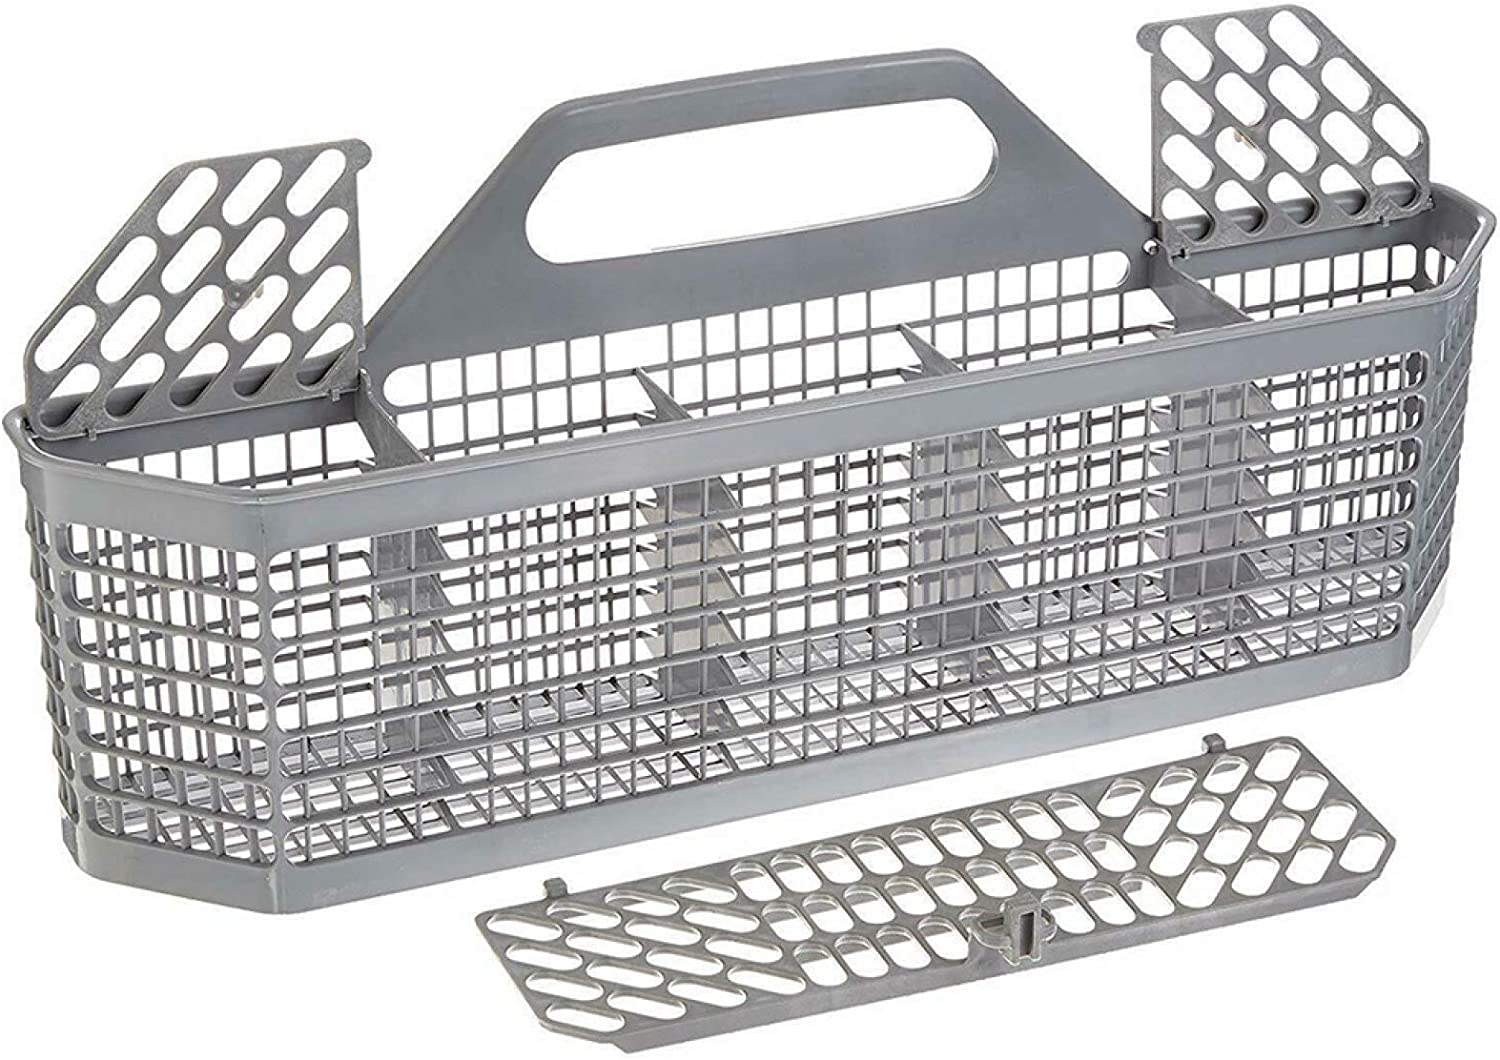 Dheera Dishwasher Utensil Basket, Dishwasher Utensil Silverware Basket Kitchen Aid Assembly, Convenient and Durable Storage Basket for Home House Tools